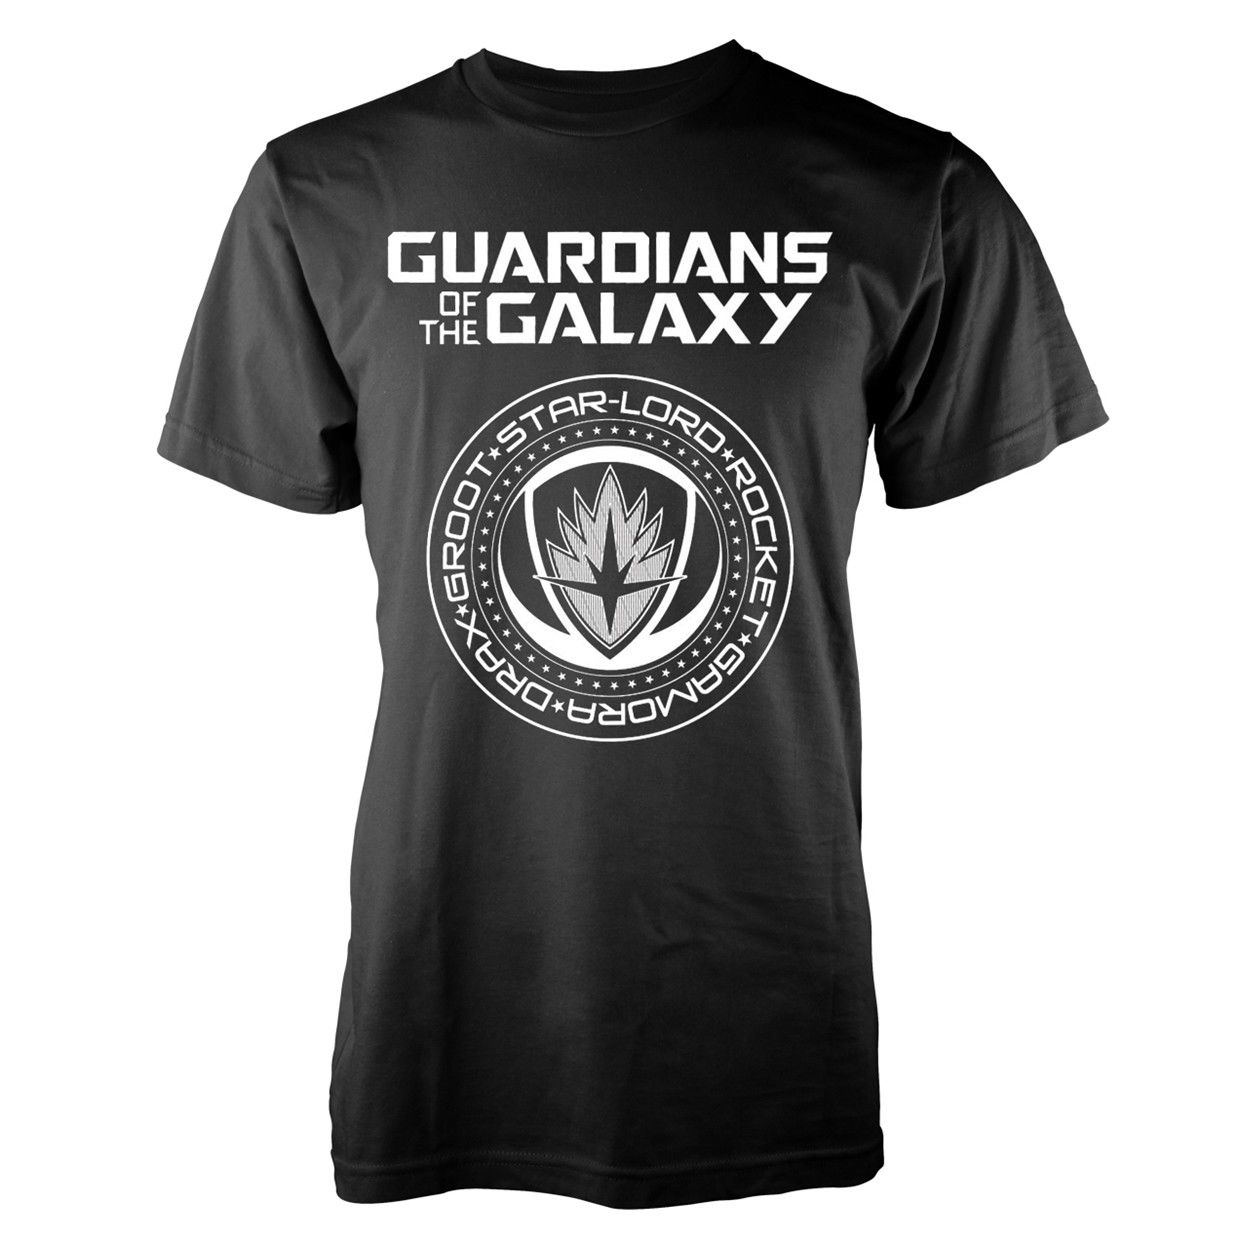 Guardians of The Galaxy 2 Logo Licensed Tee T-Shirt Men New Funny Brand Clothing Print T Shirt Summer Style Hot Normal